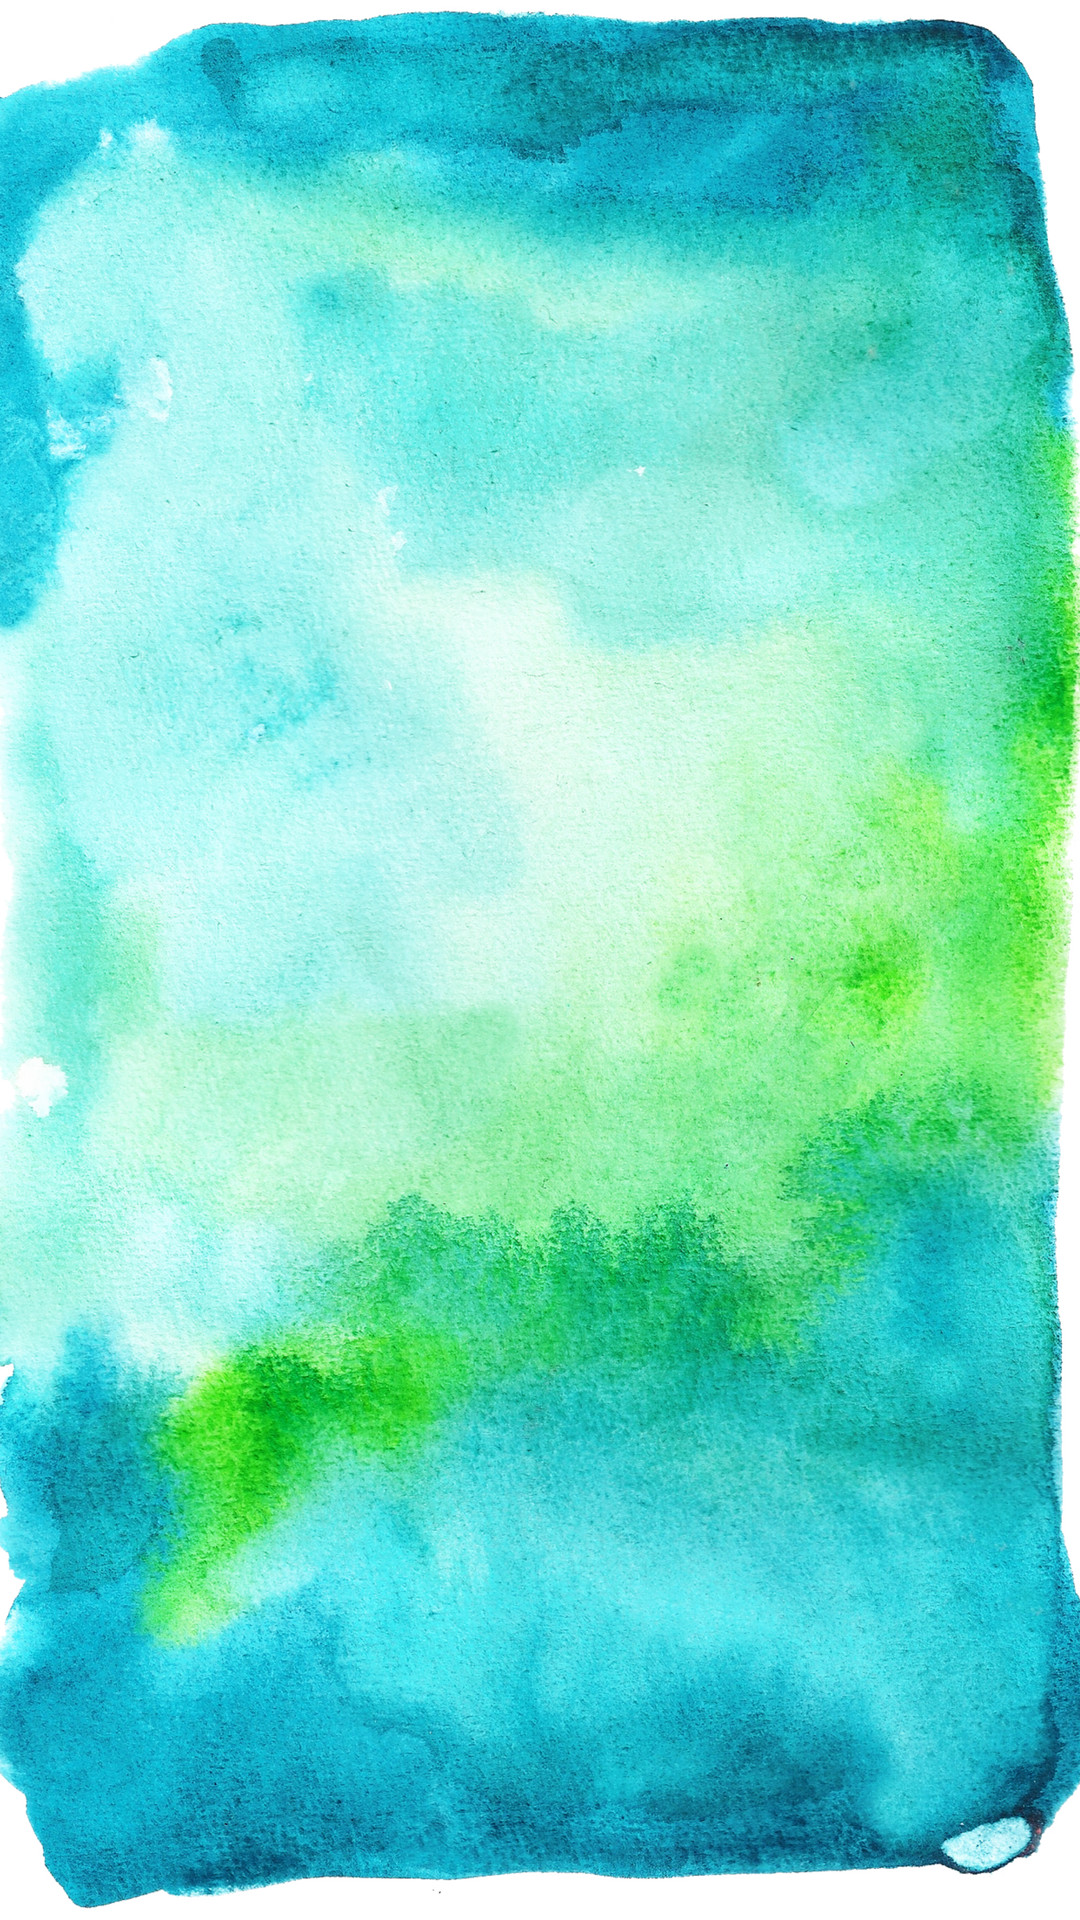 1080x1920 Click to download blue and green watercolor wallpaper.